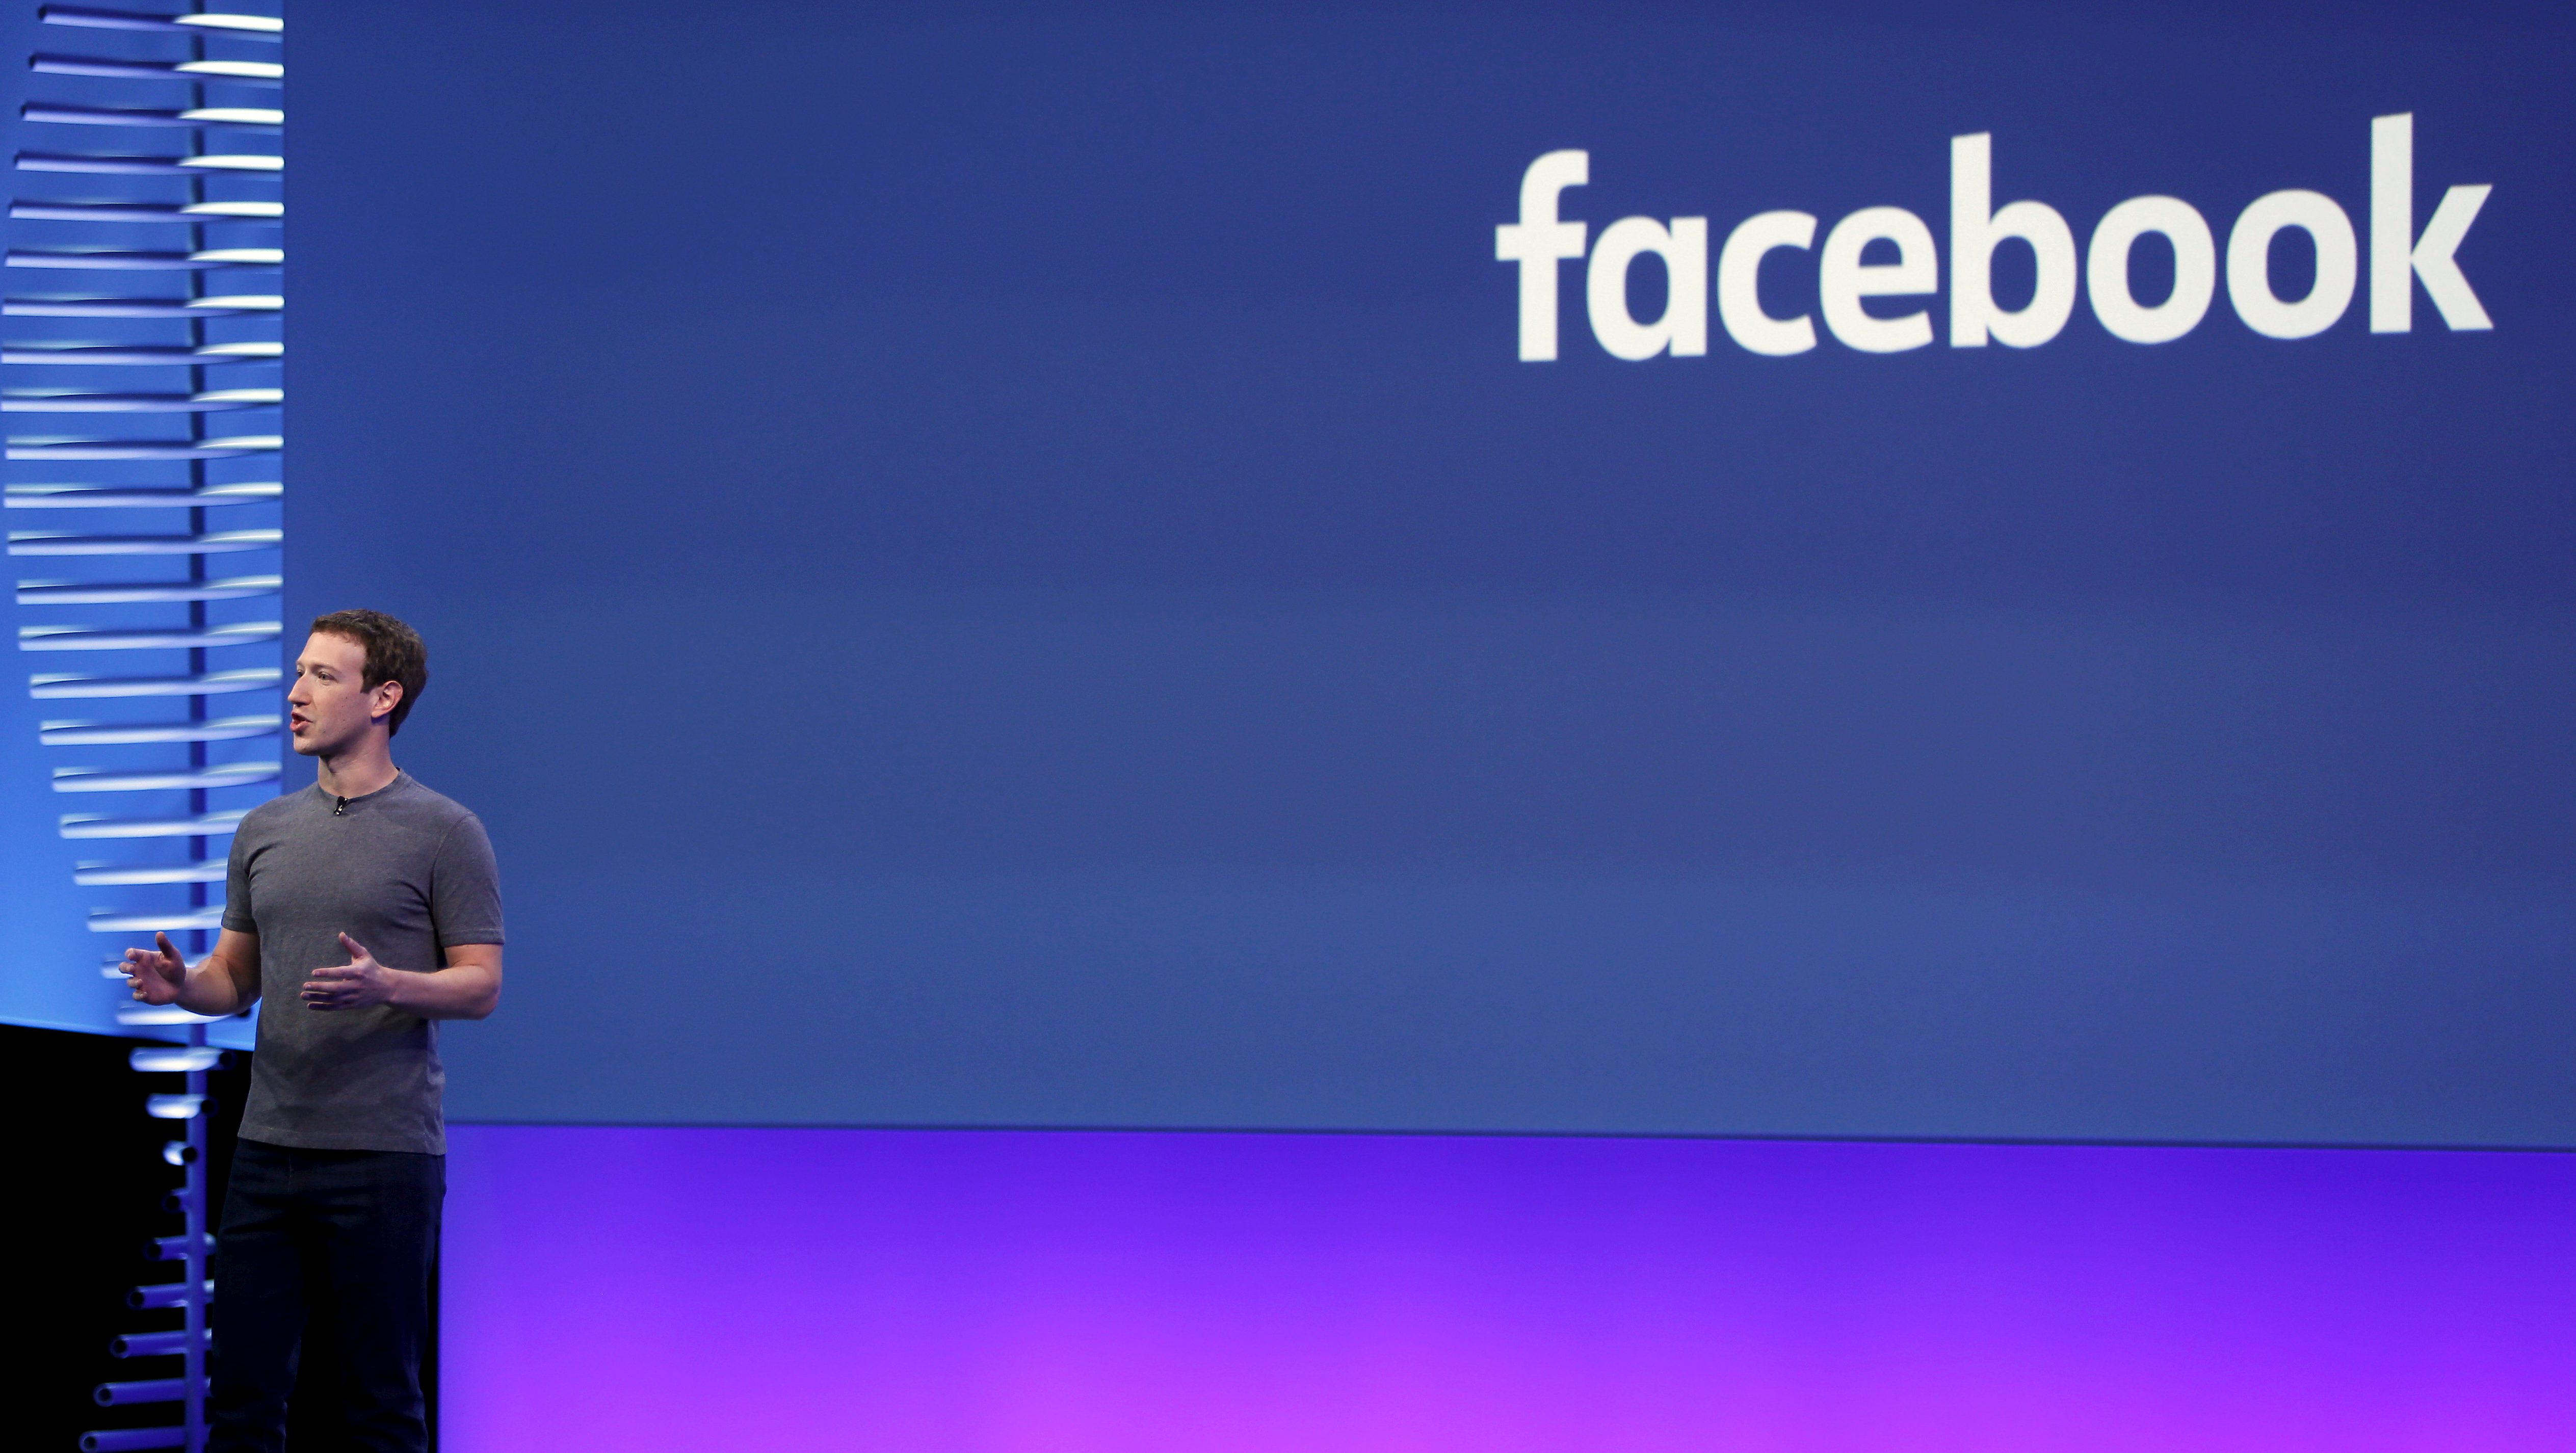 FILE PHOTO: Facebook CEO Mark Zuckerberg speaks on stage during the Facebook F8 conference in San Francisco, California, U.S. on April 12, 2016.    REUTERS/Stephen Lam/File Photo - RC16E2763940